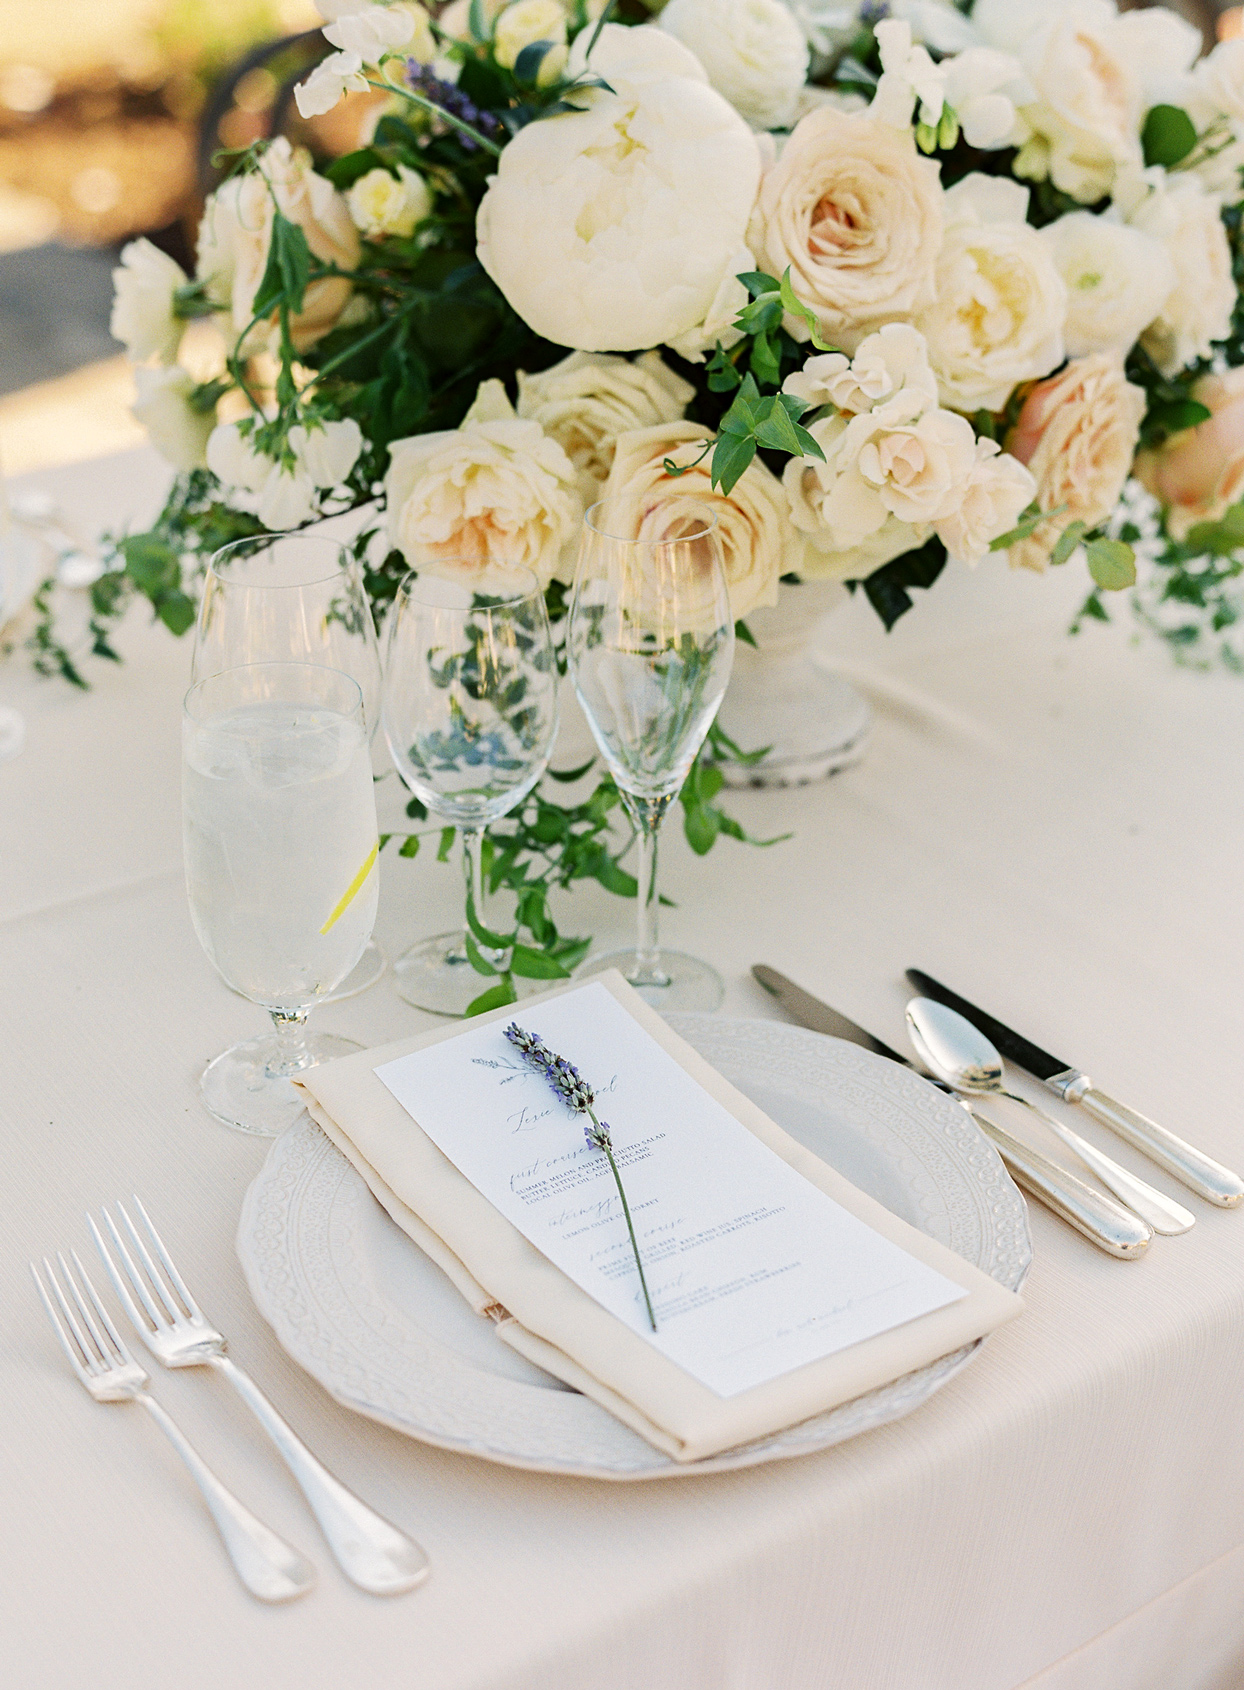 white and cream color themed table settings